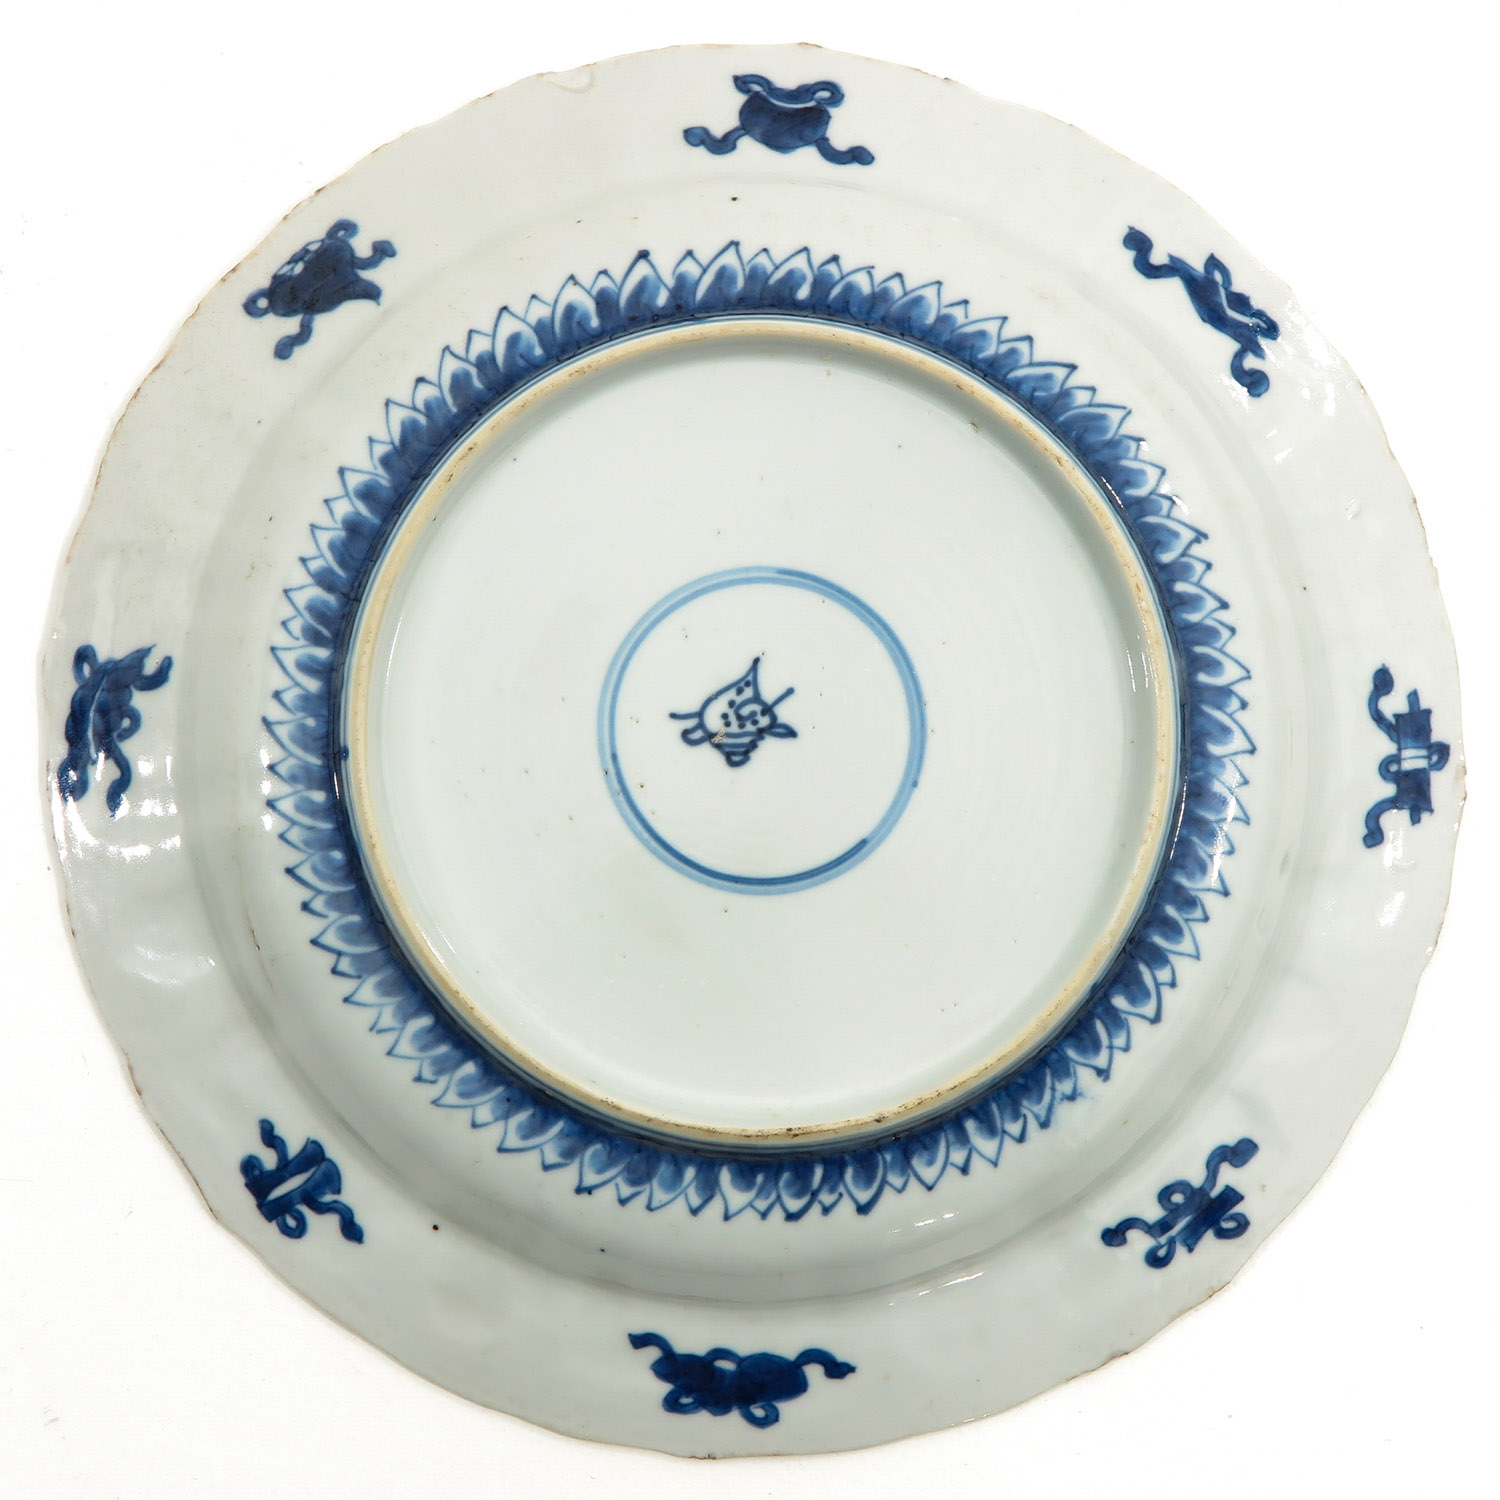 A Blue and White Plate - Image 2 of 6